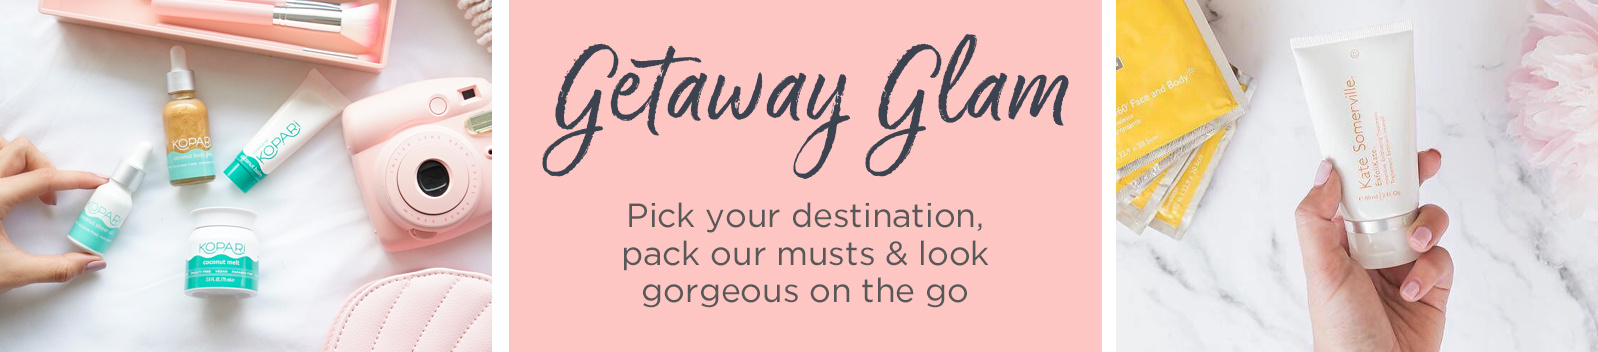 Getaway Glam. Pick your destination, pack our musts & look gorgeous on the go